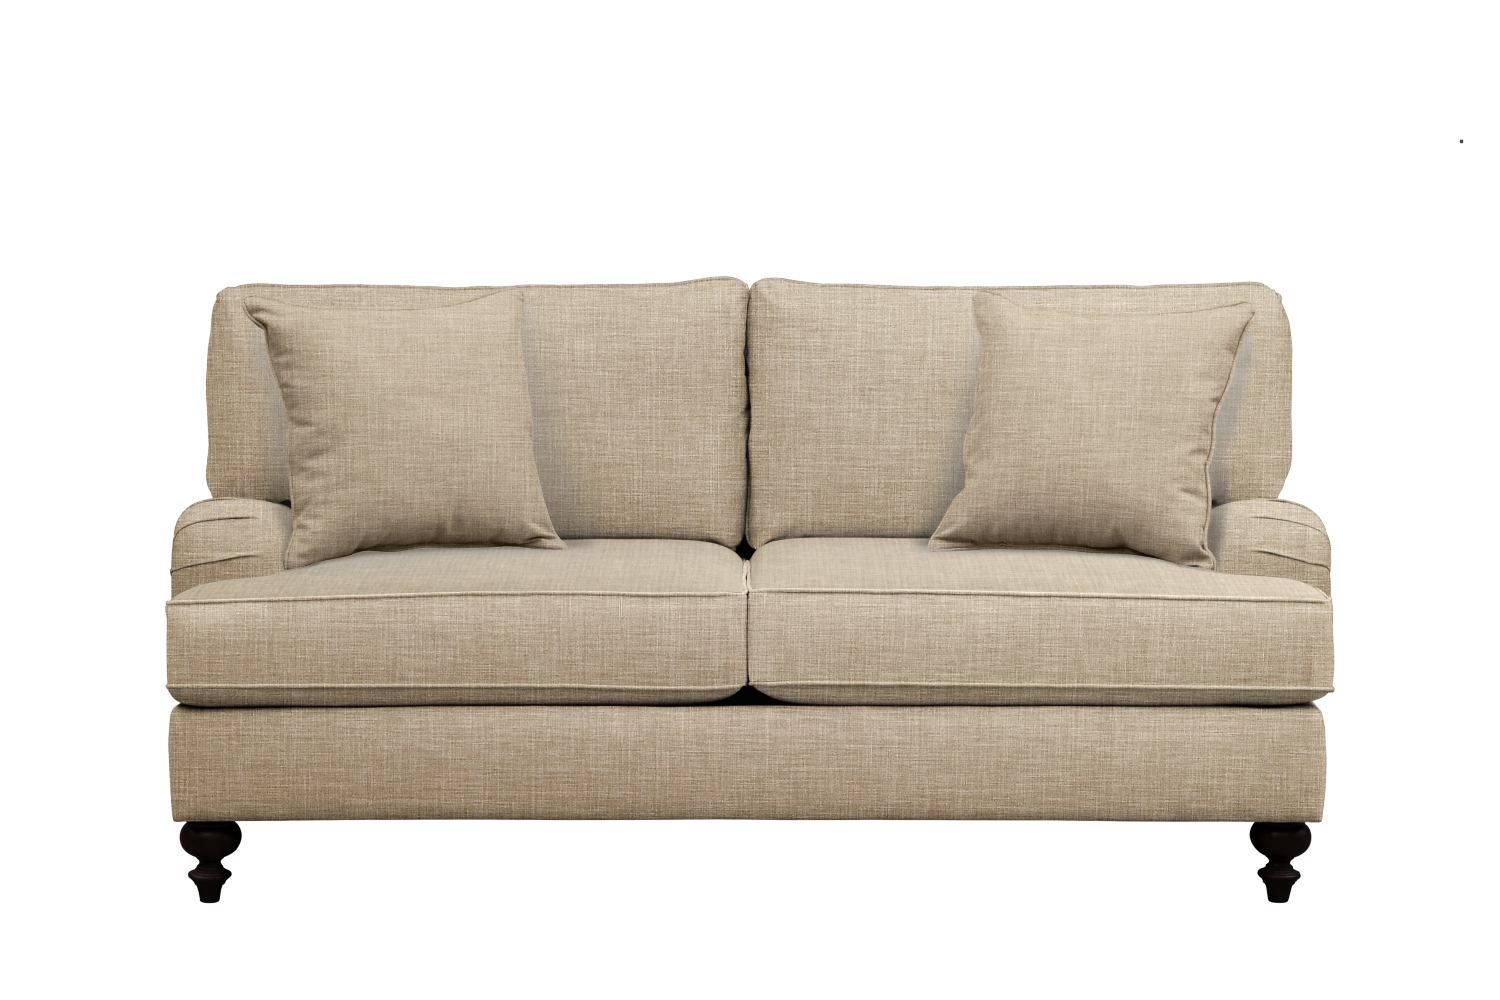 "Living Room Furniture - Avery English Arm Sofa 74"" Milford II Toast w/ Milford II Toast  Pillow"